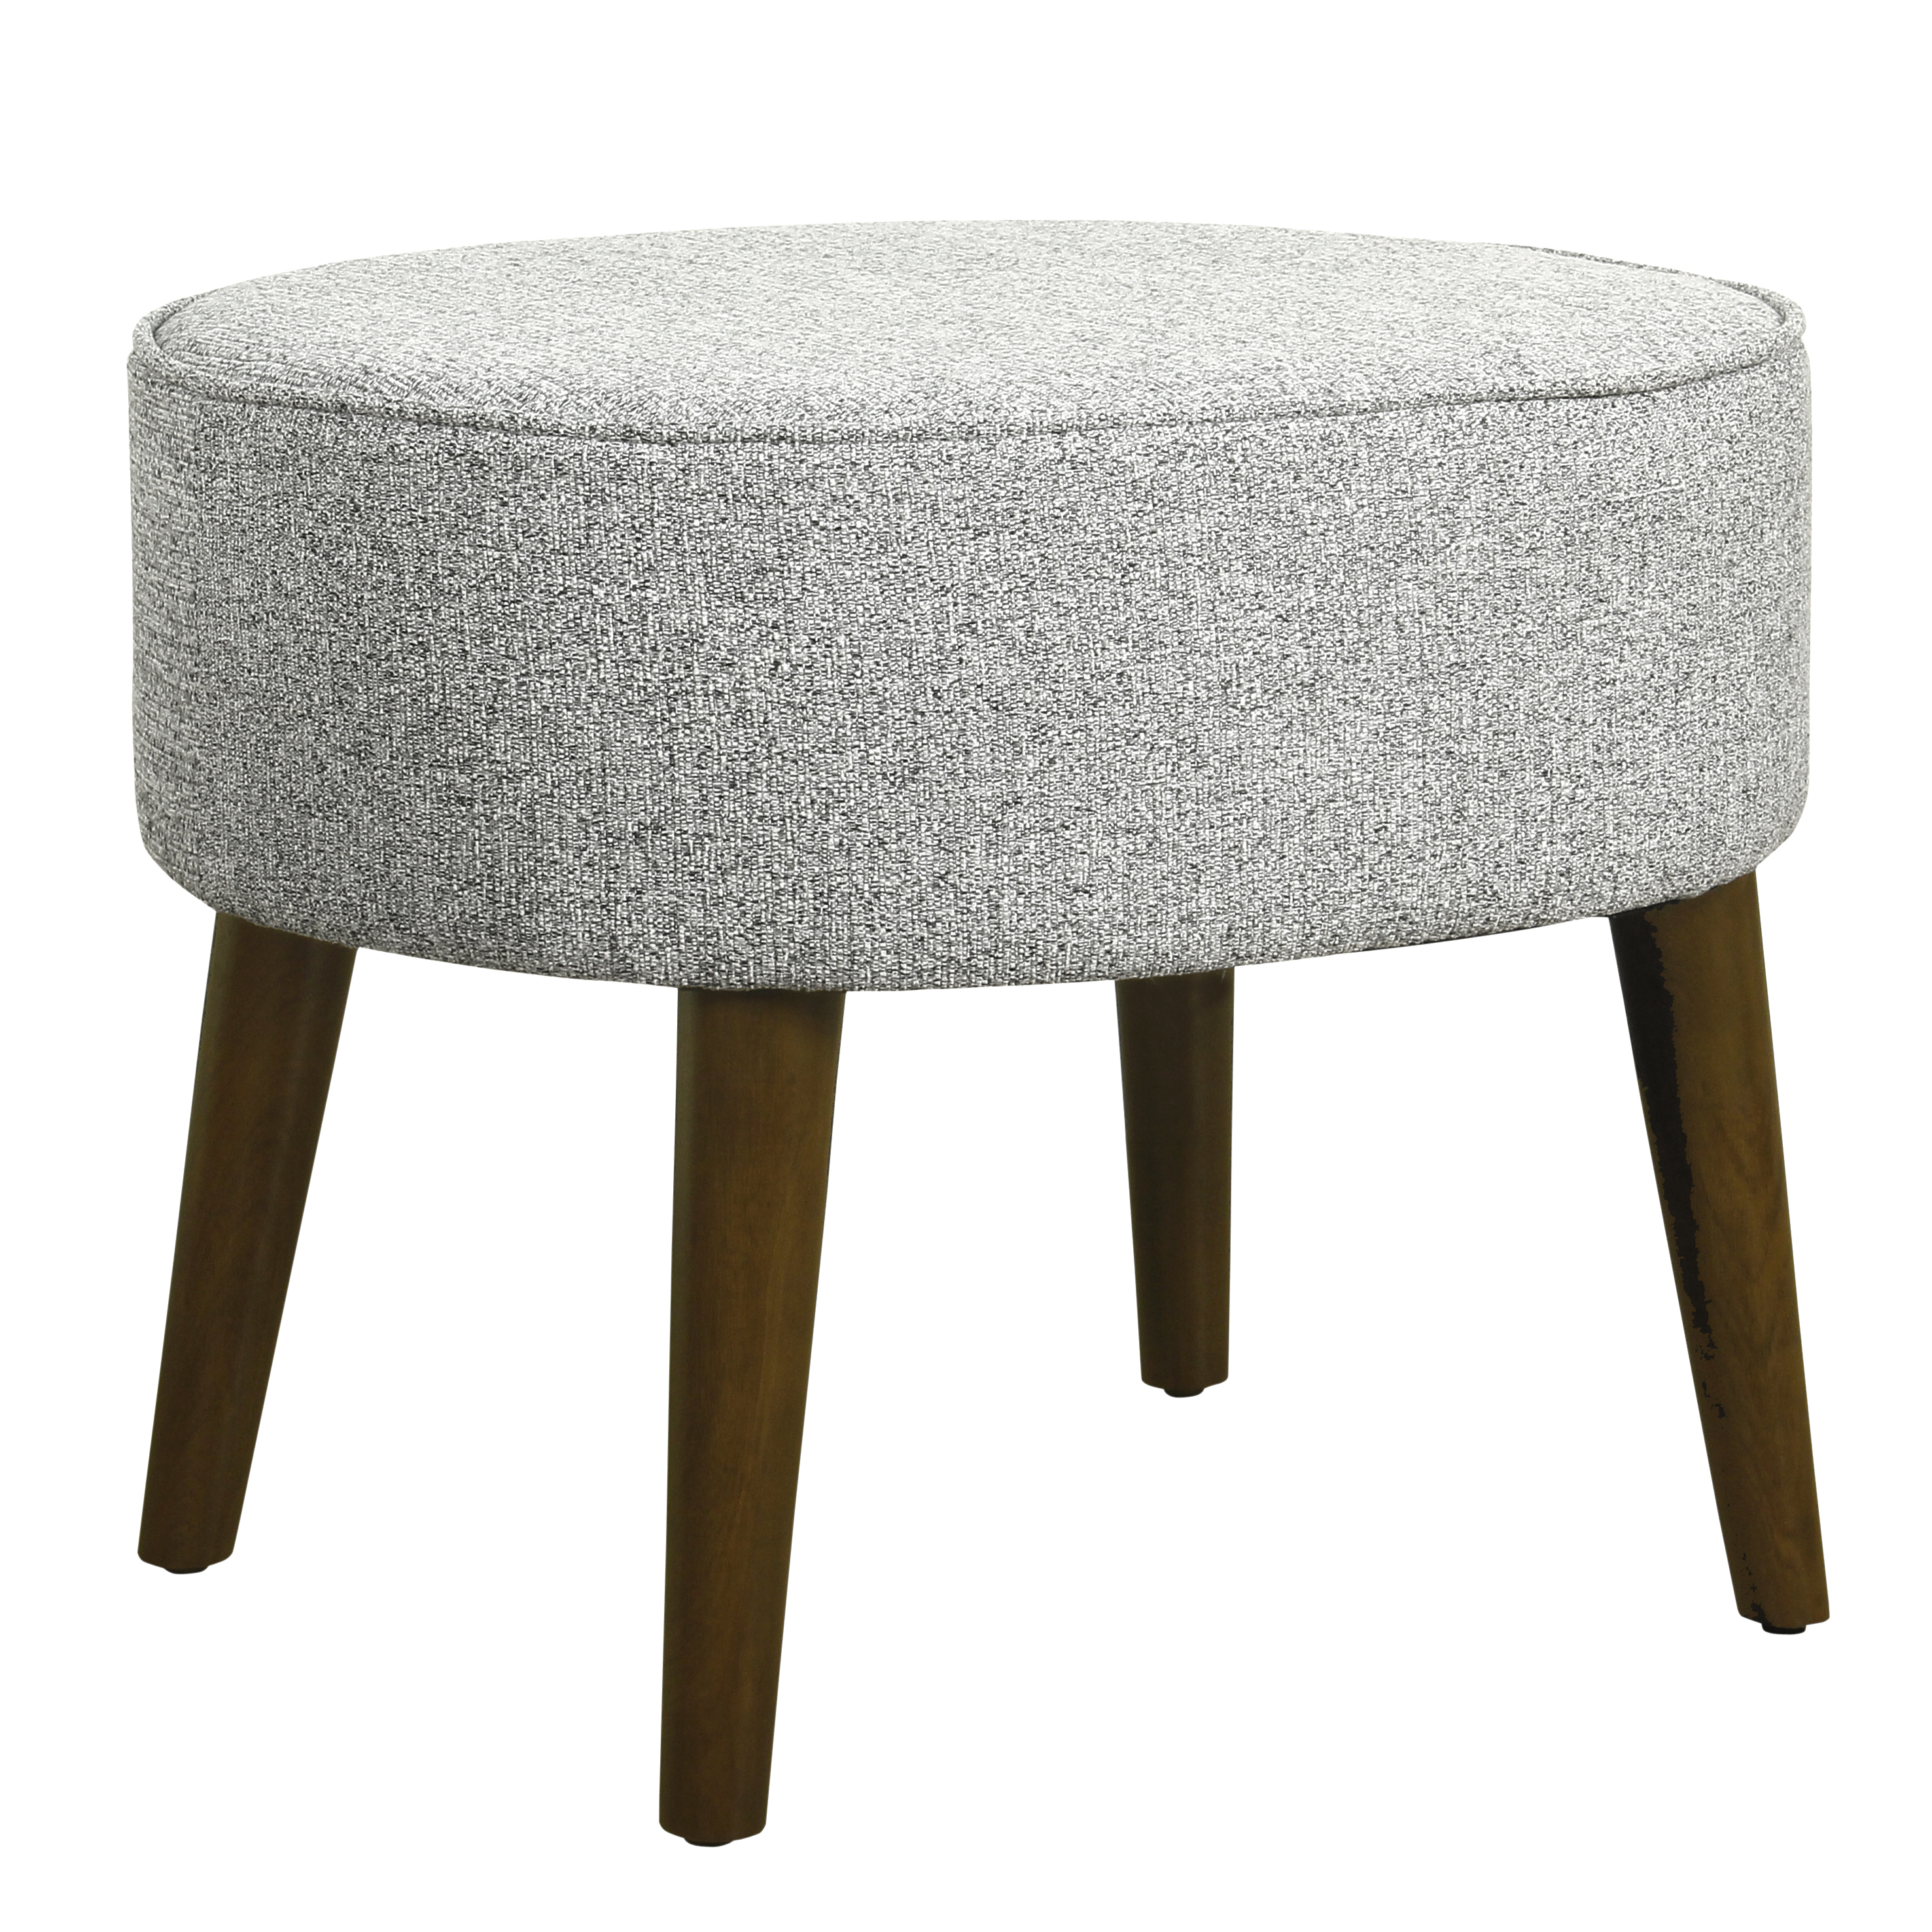 HomePop Decorative Oval Ottoman with Wood Legs, Ash Gray